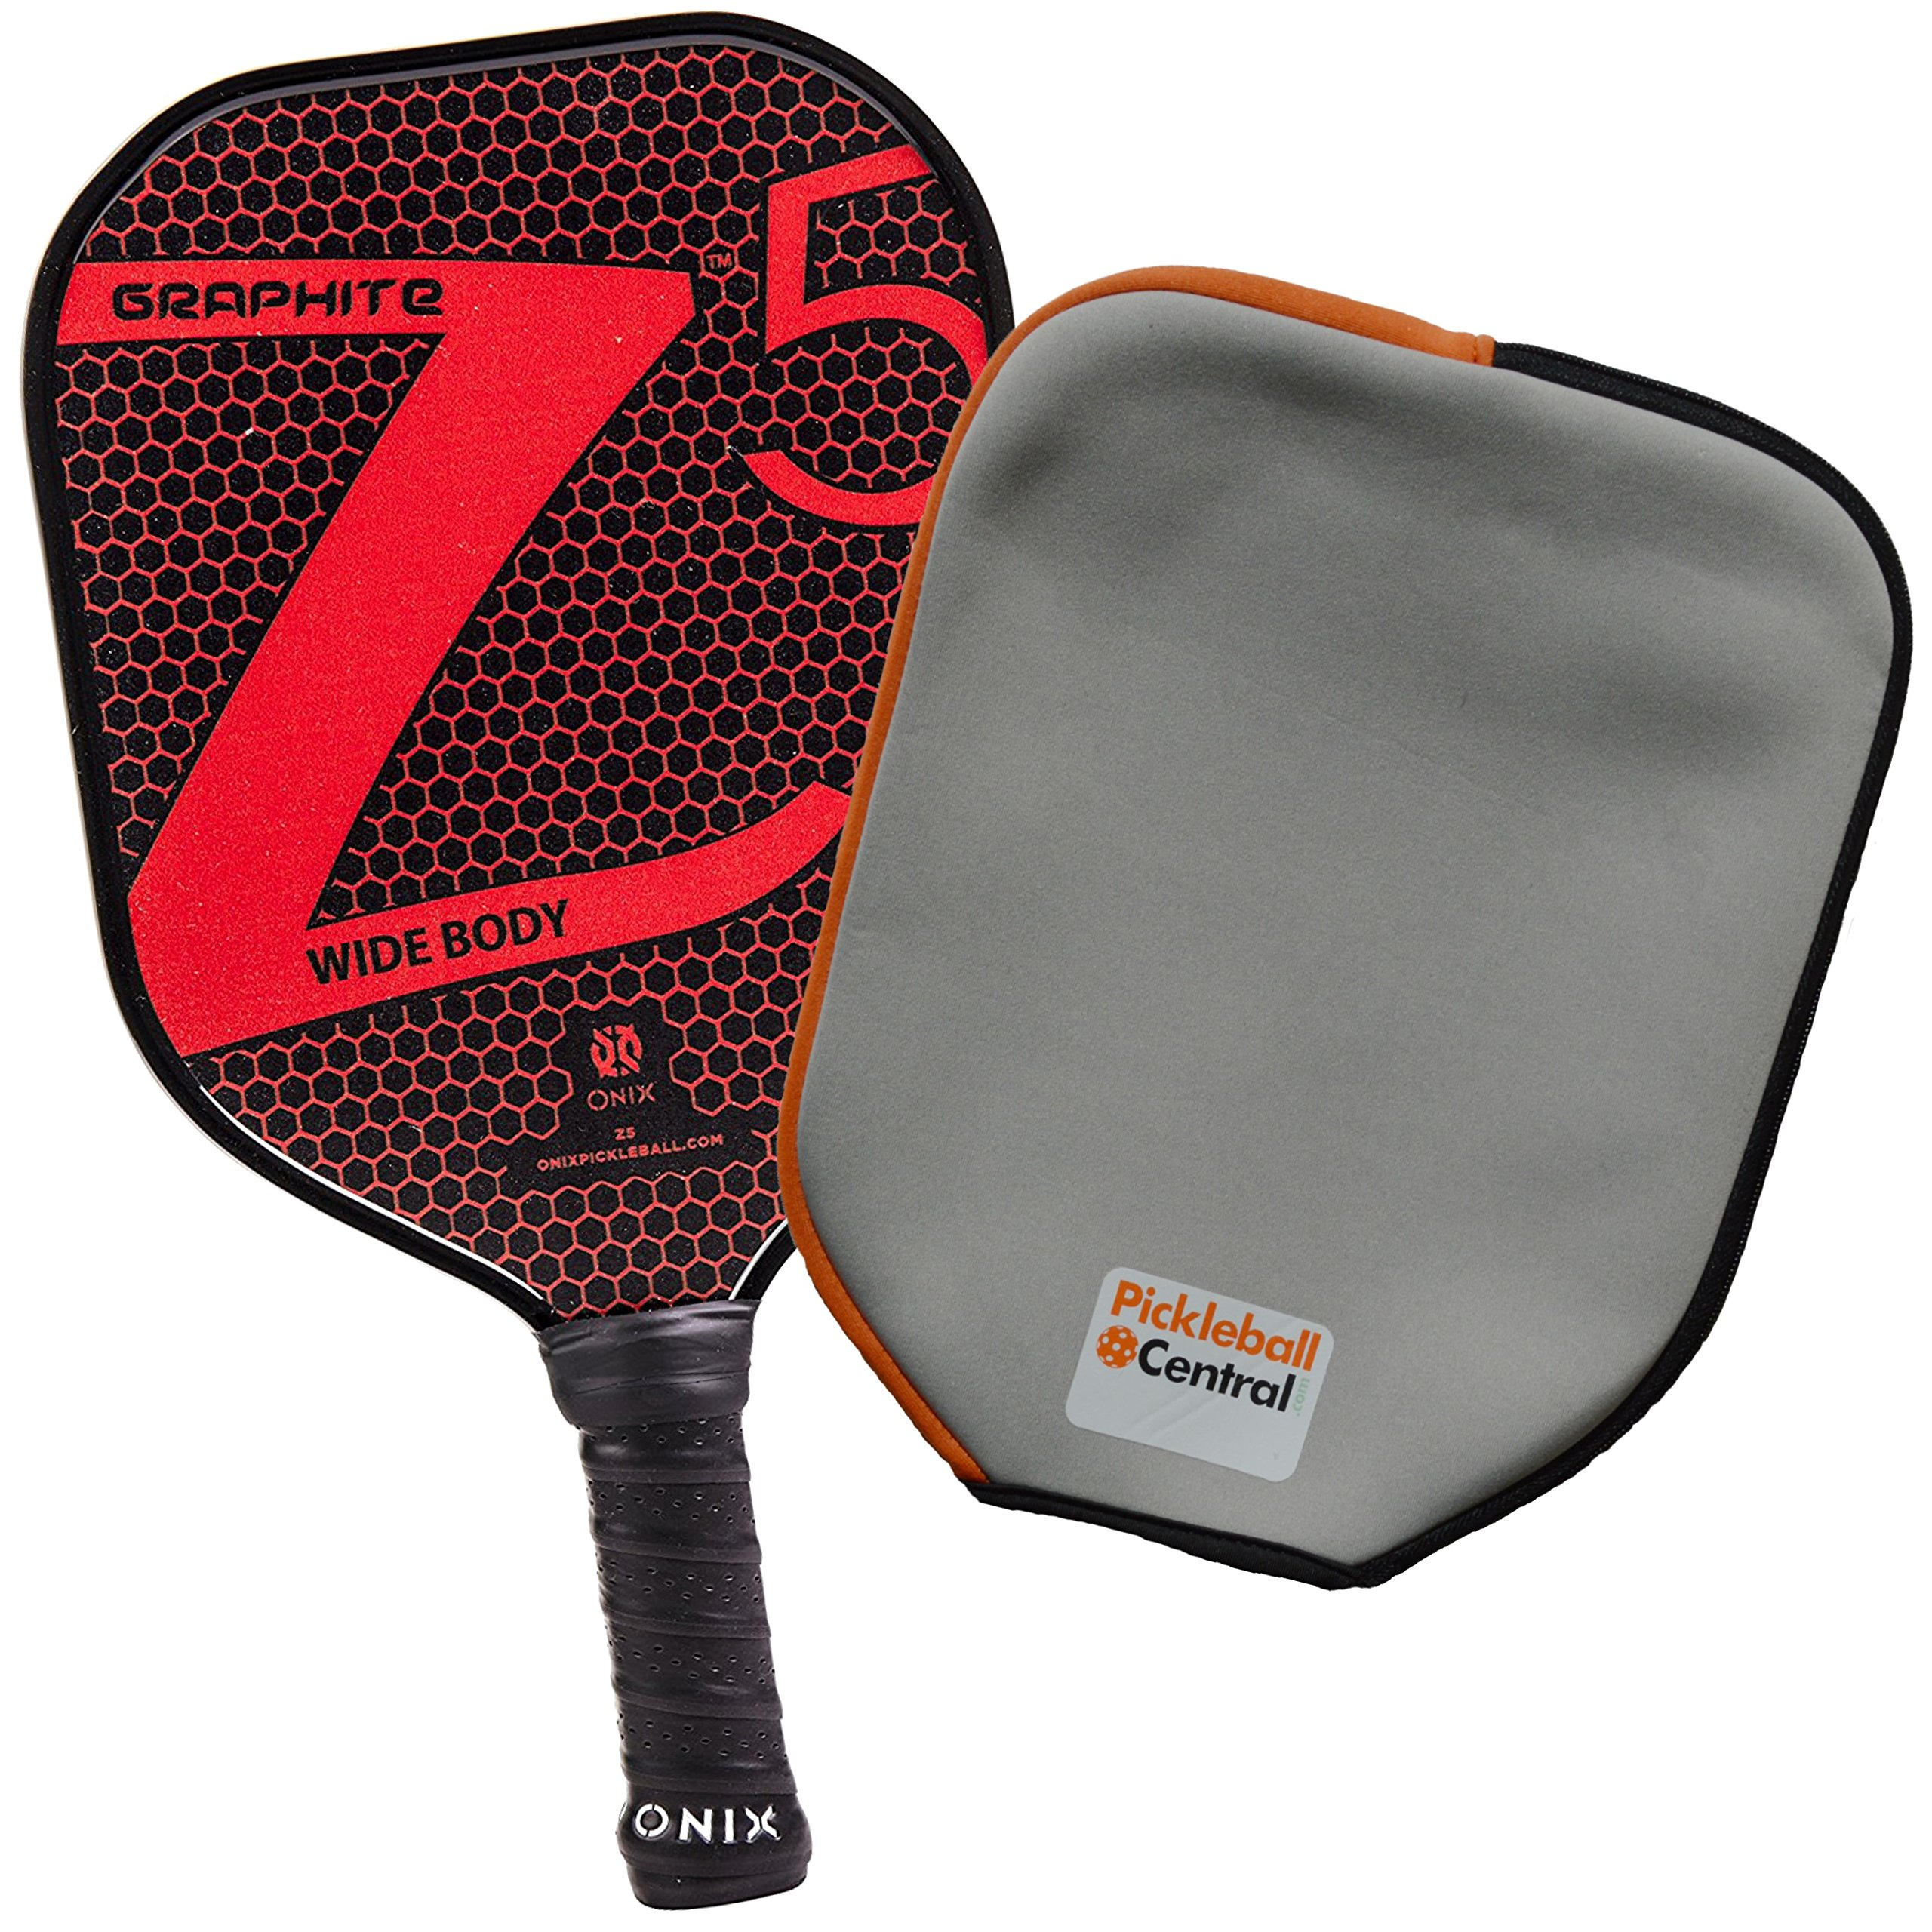 Onix Z5 Graphite Pickleball Paddle and Paddle Cover -8L7L